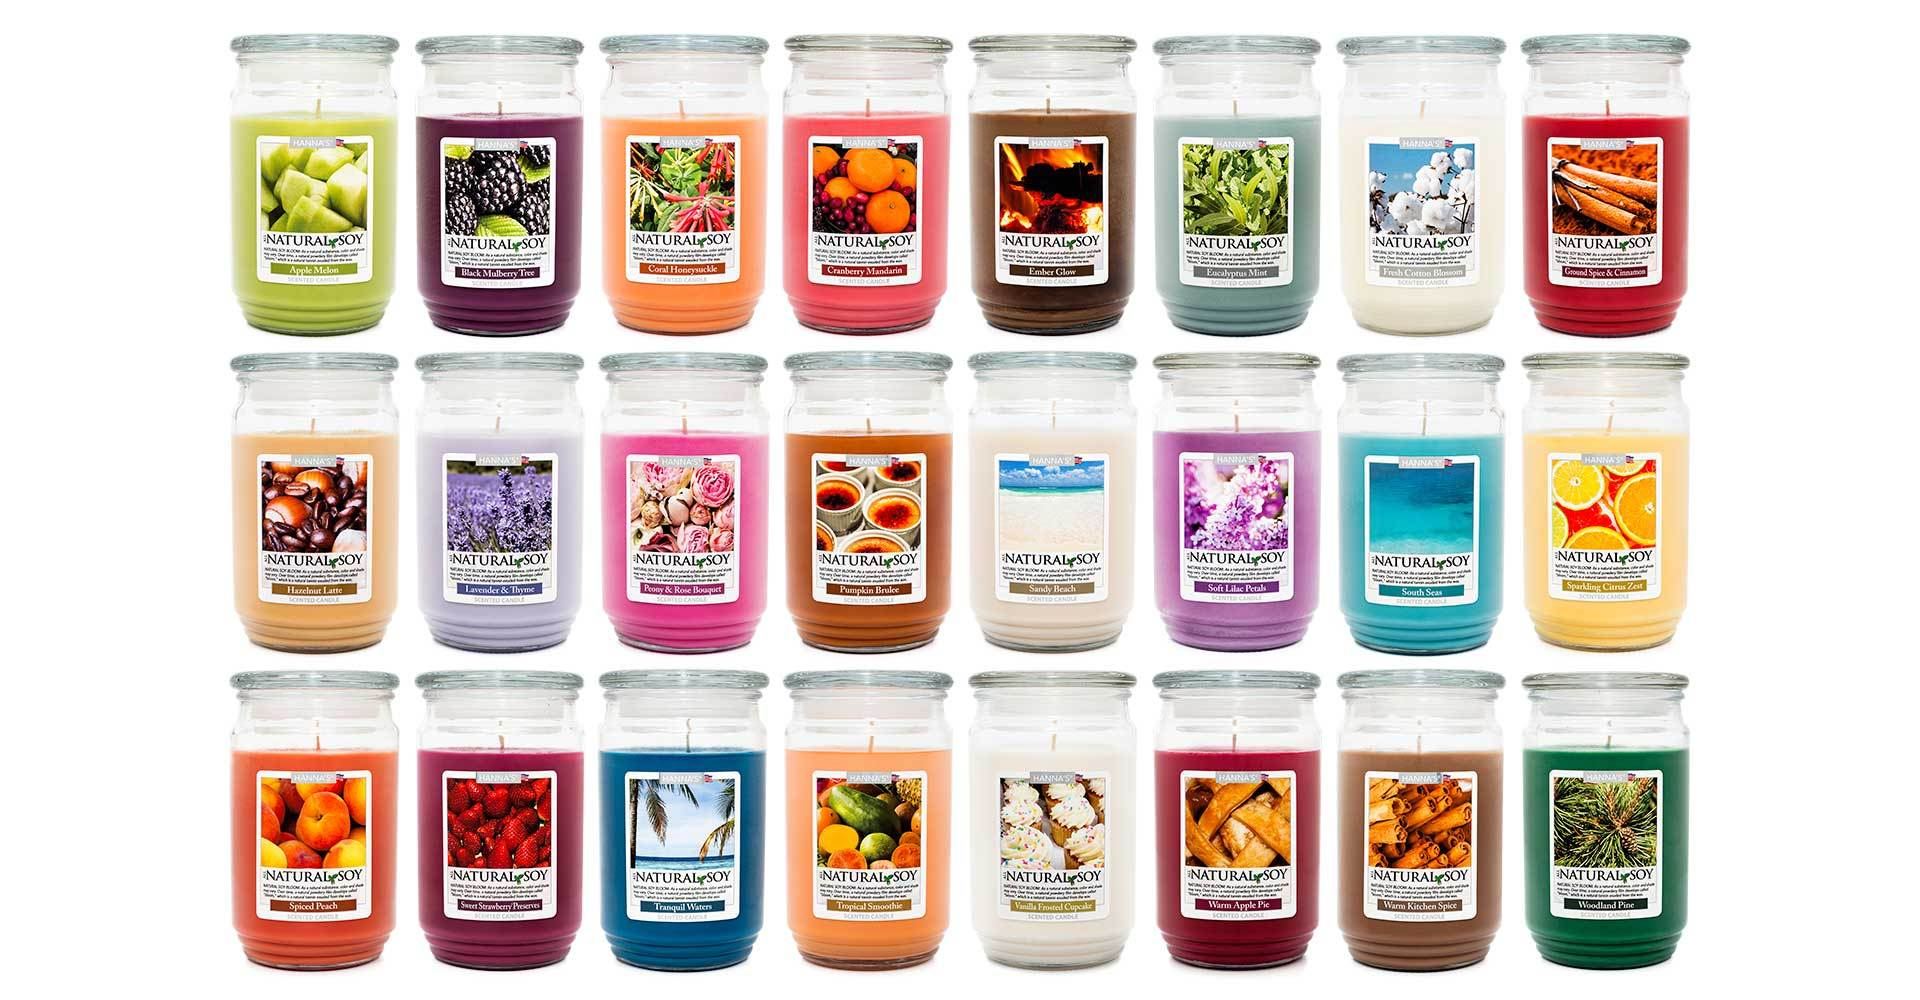 Natural Soy Sparkling Citrus Zest Scented Soy Candle 100% Soy Candles Candlemart.com $ 12.99